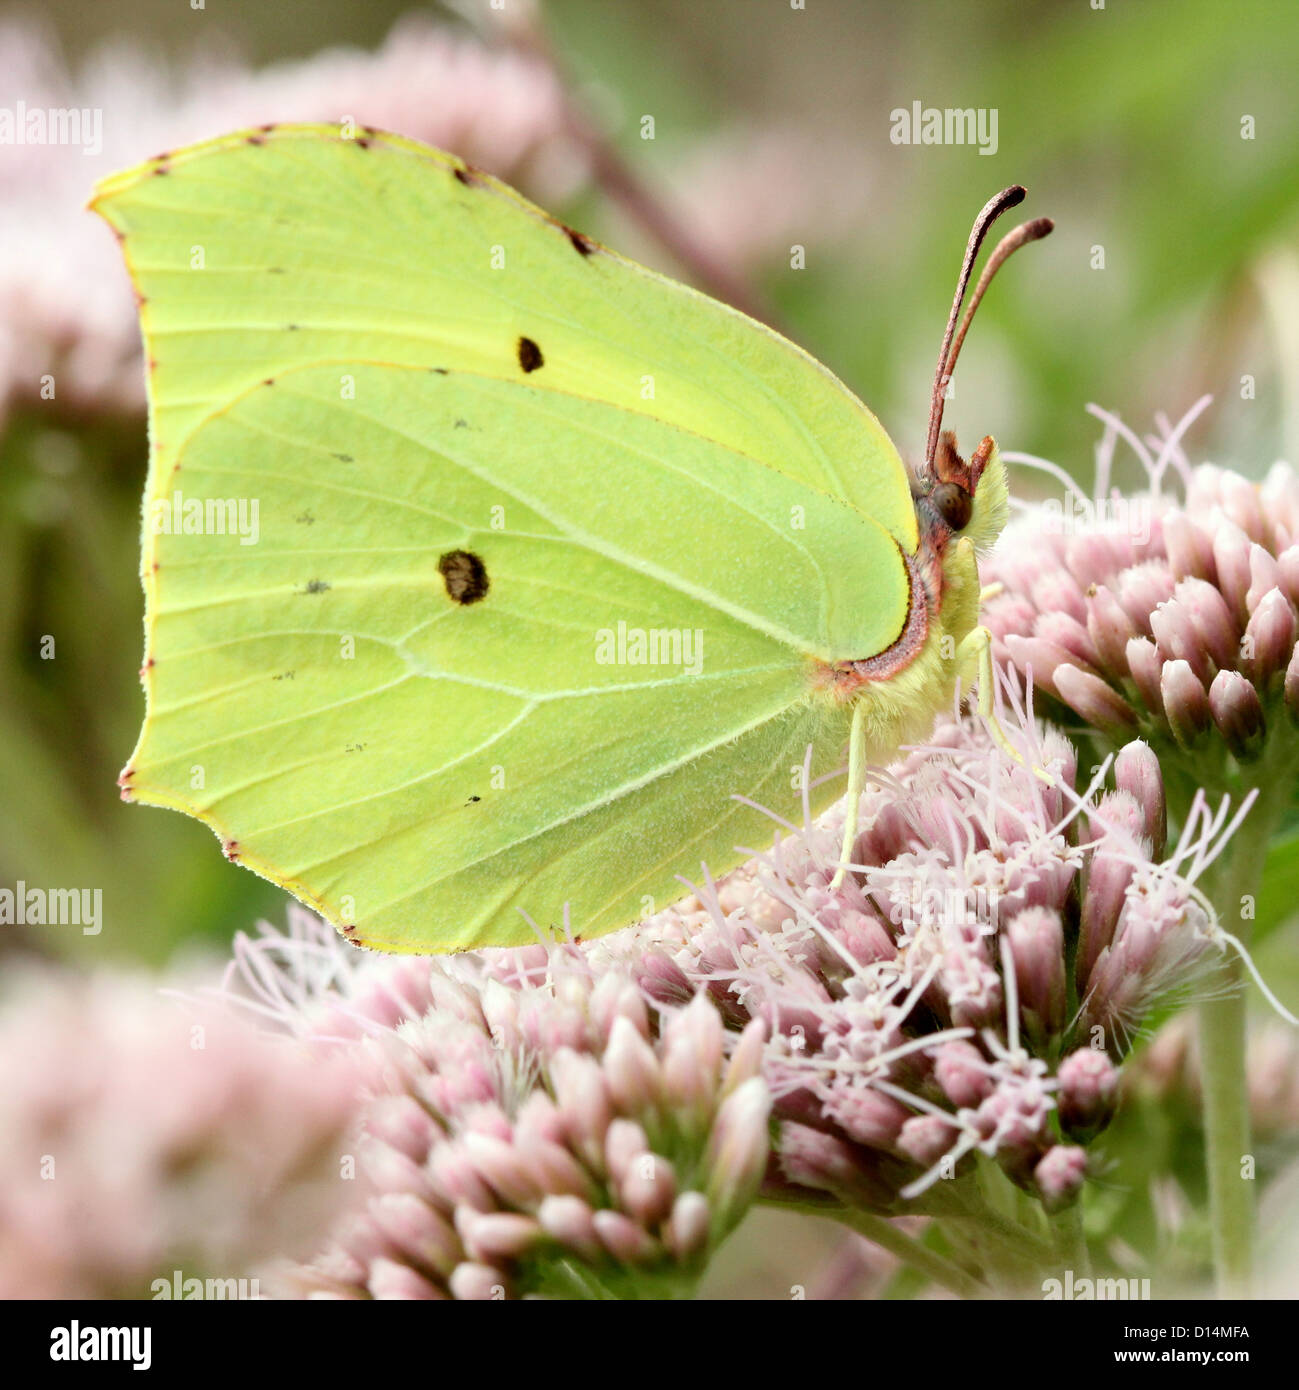 Extremely detailed macro close-up of a Common Brimstone (Gonepteryx rhamni) feeding on nectar - Stock Image